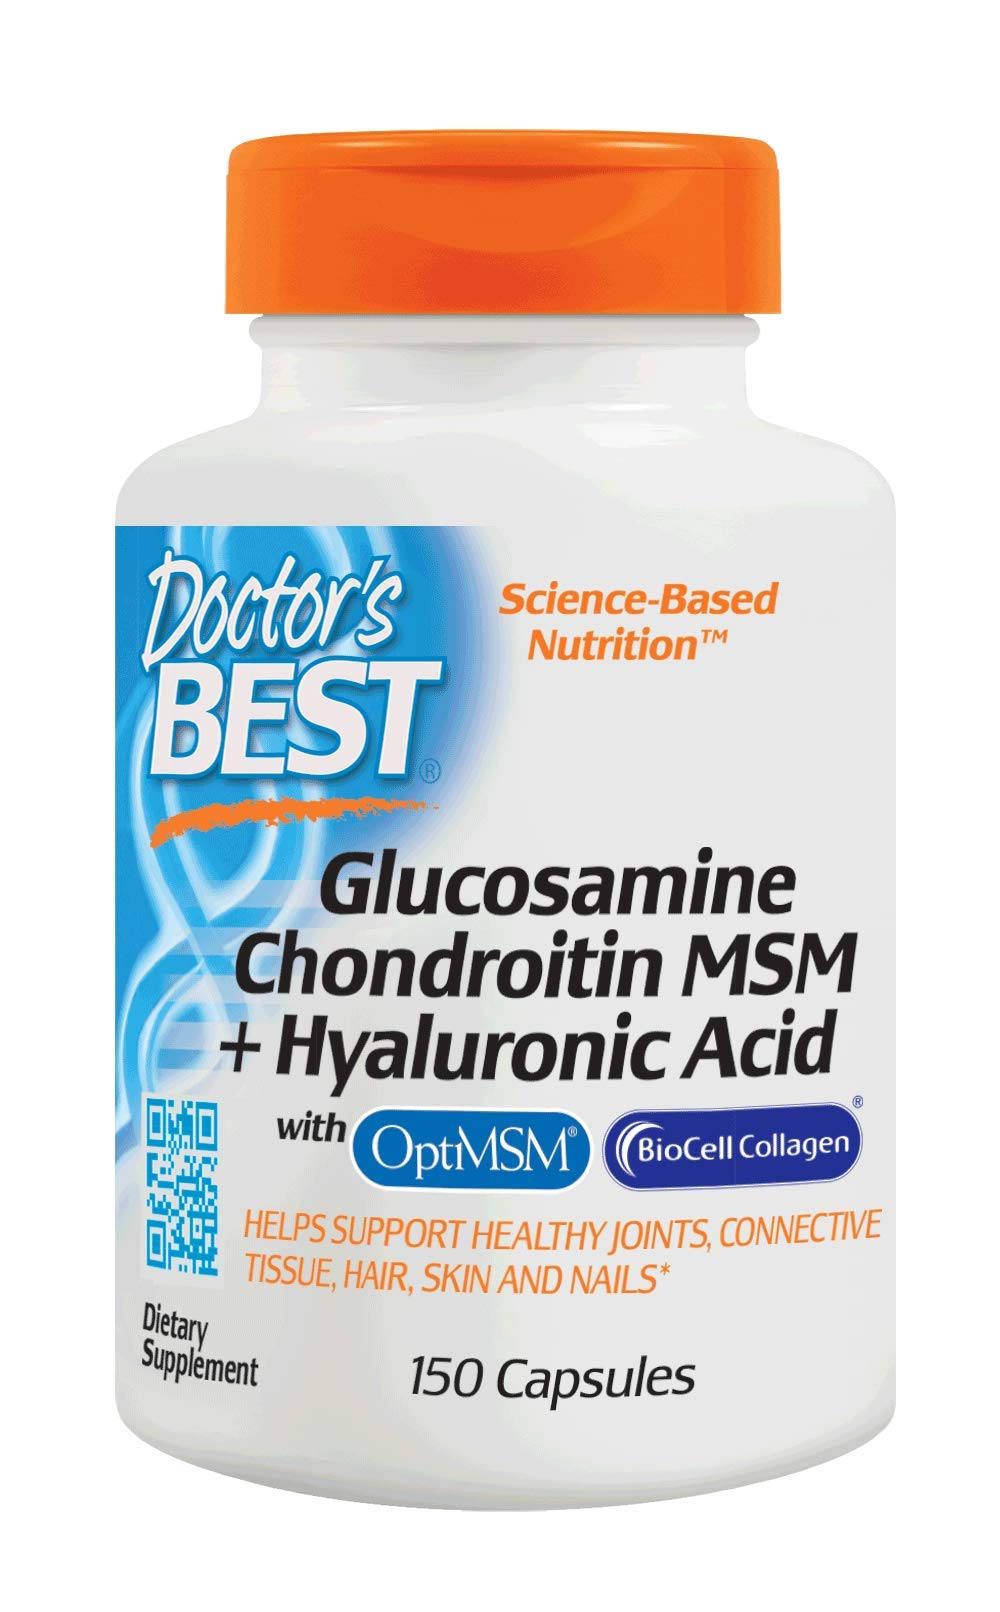 Doctor's Best Glucosamine Chondroitin MSM + Hyaluronic Acid with OptiMSM & BioCell Collagen, Joint Support, Non-GMO, Gluten Free, Soy Free, 150 Caps by Doctor's Best (Image #1)